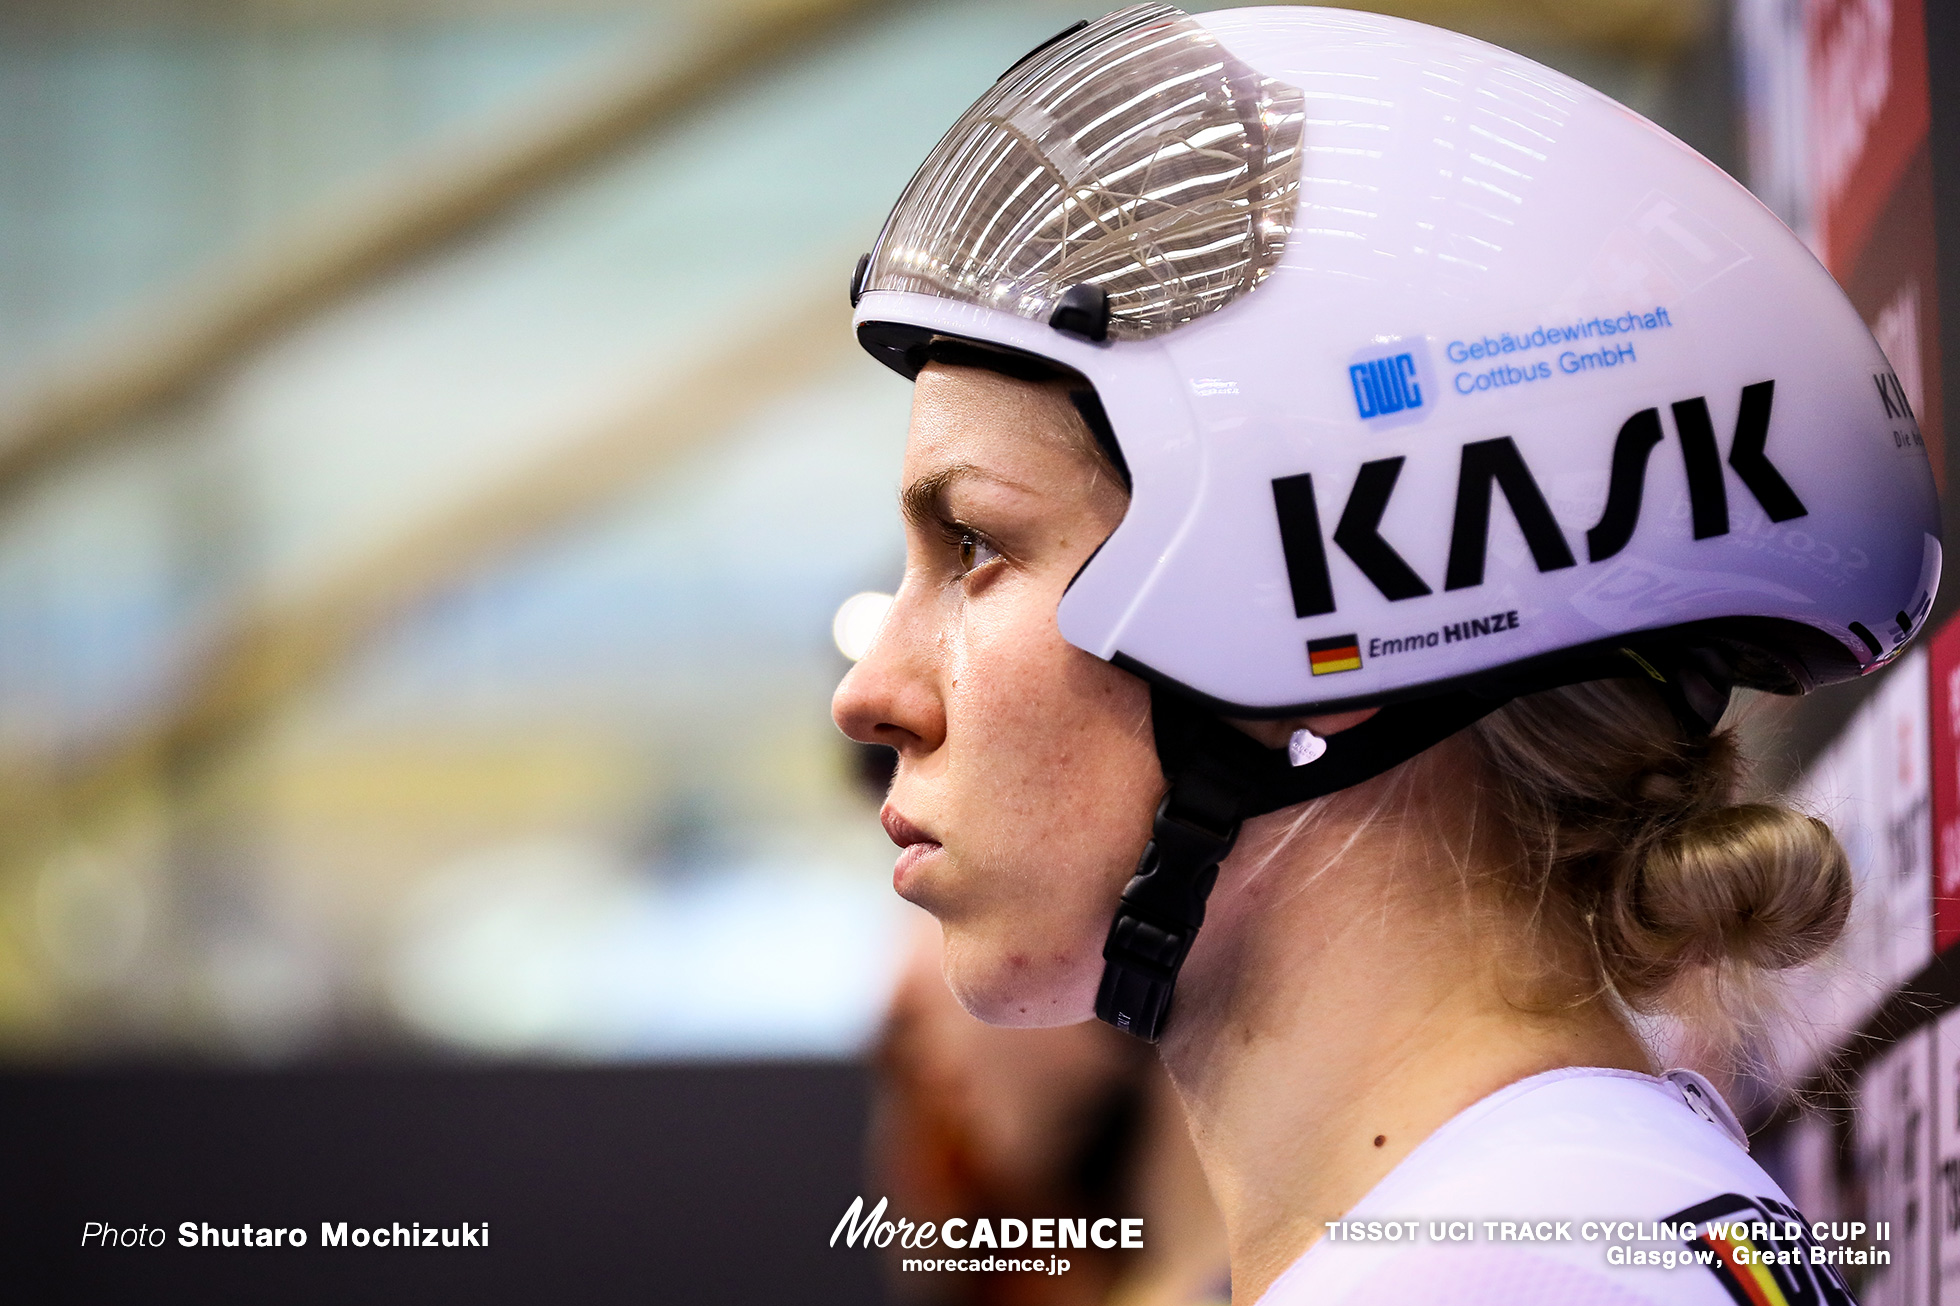 Final / Women's Sprint / TISSOT UCI TRACK CYCLING WORLD CUP II, Glasgow, Great Britain, Emma HINZE エマ・ヒンツェ